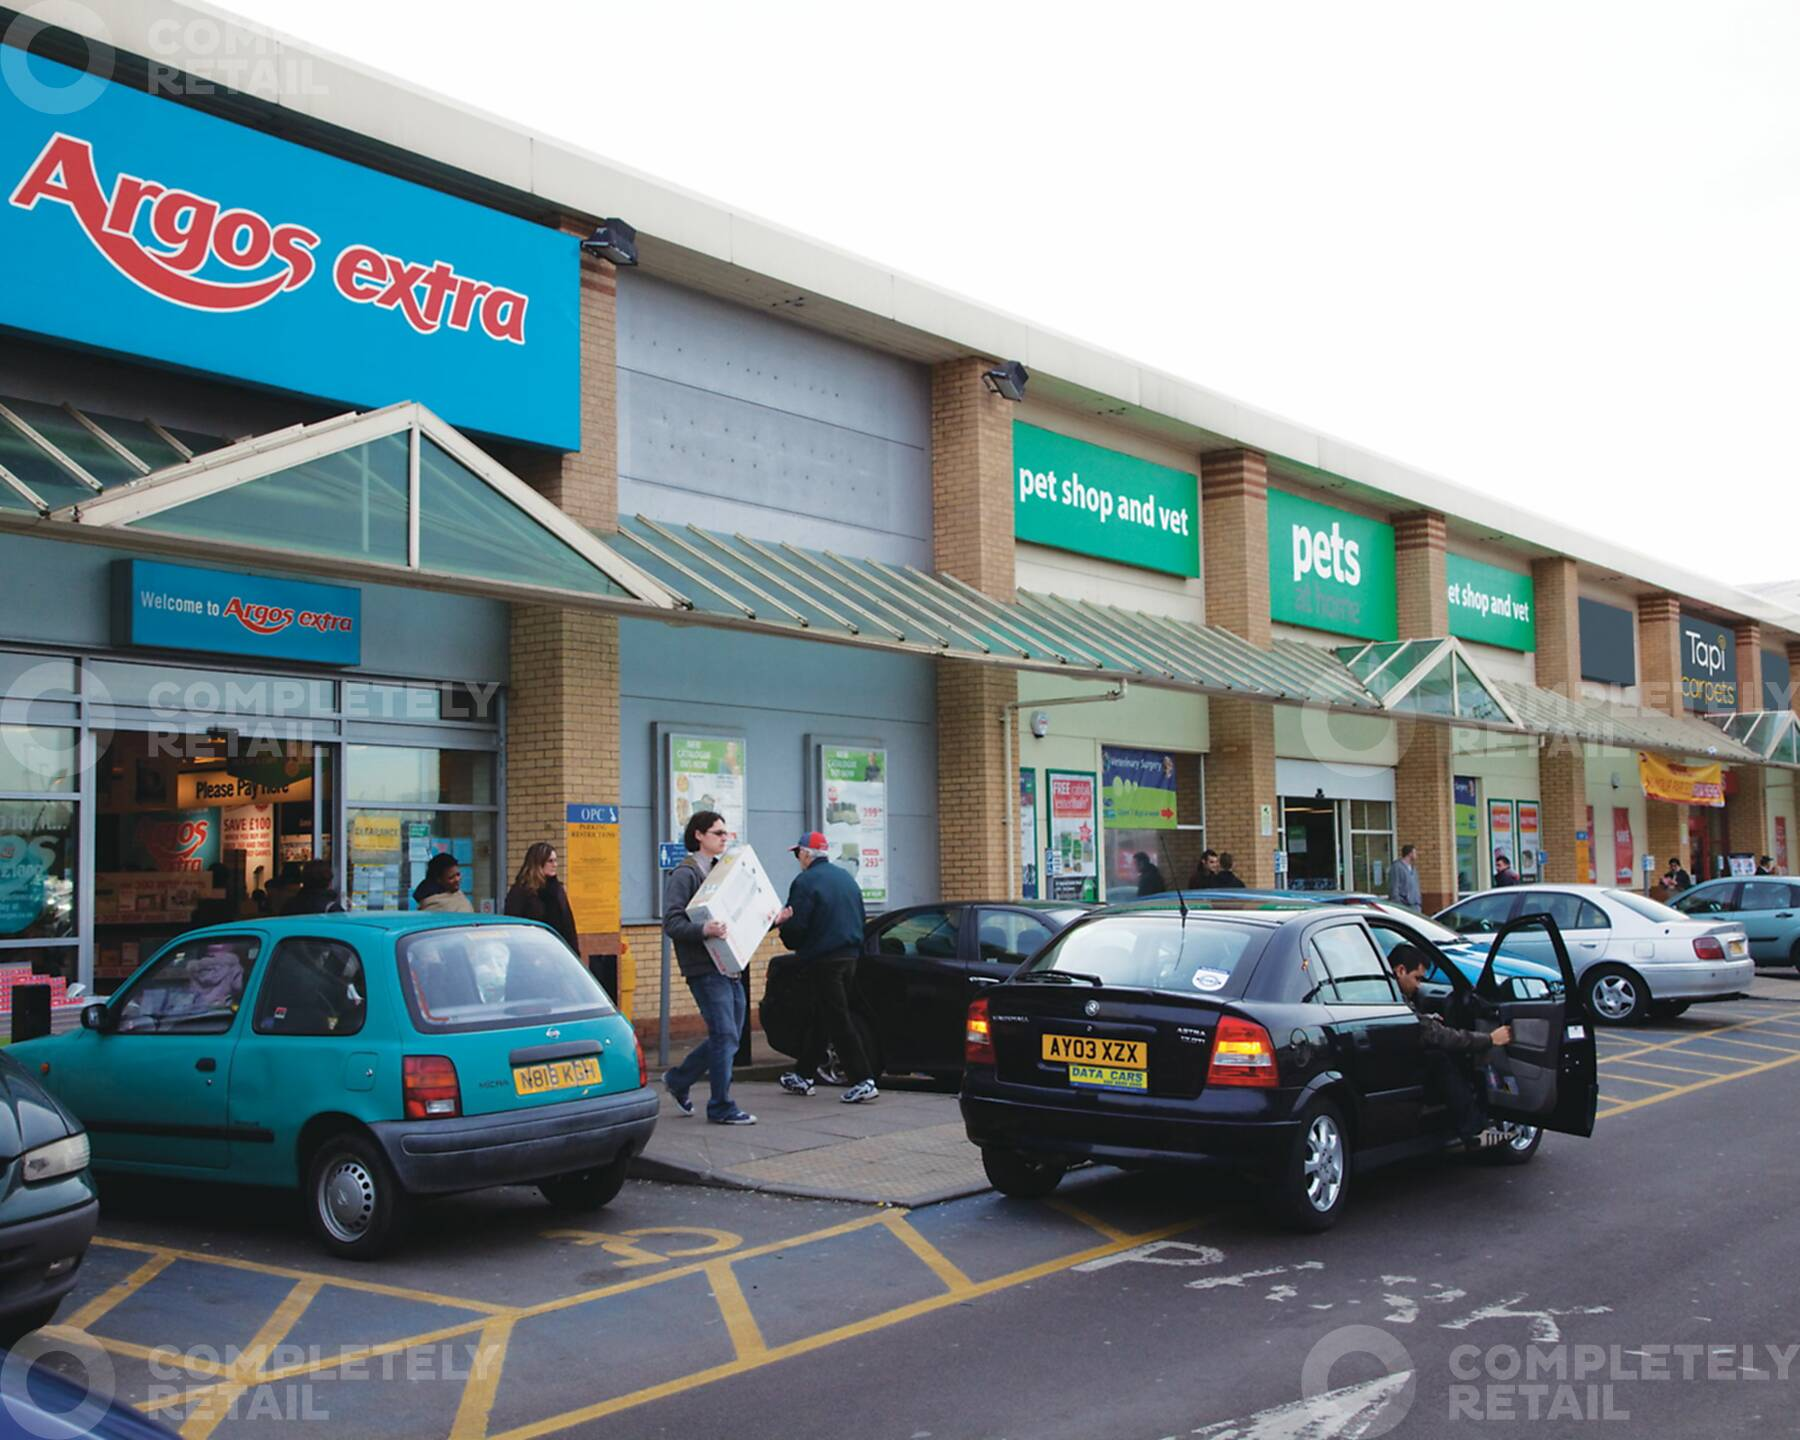 peninsular retail park london completely retail peninsular retail park london